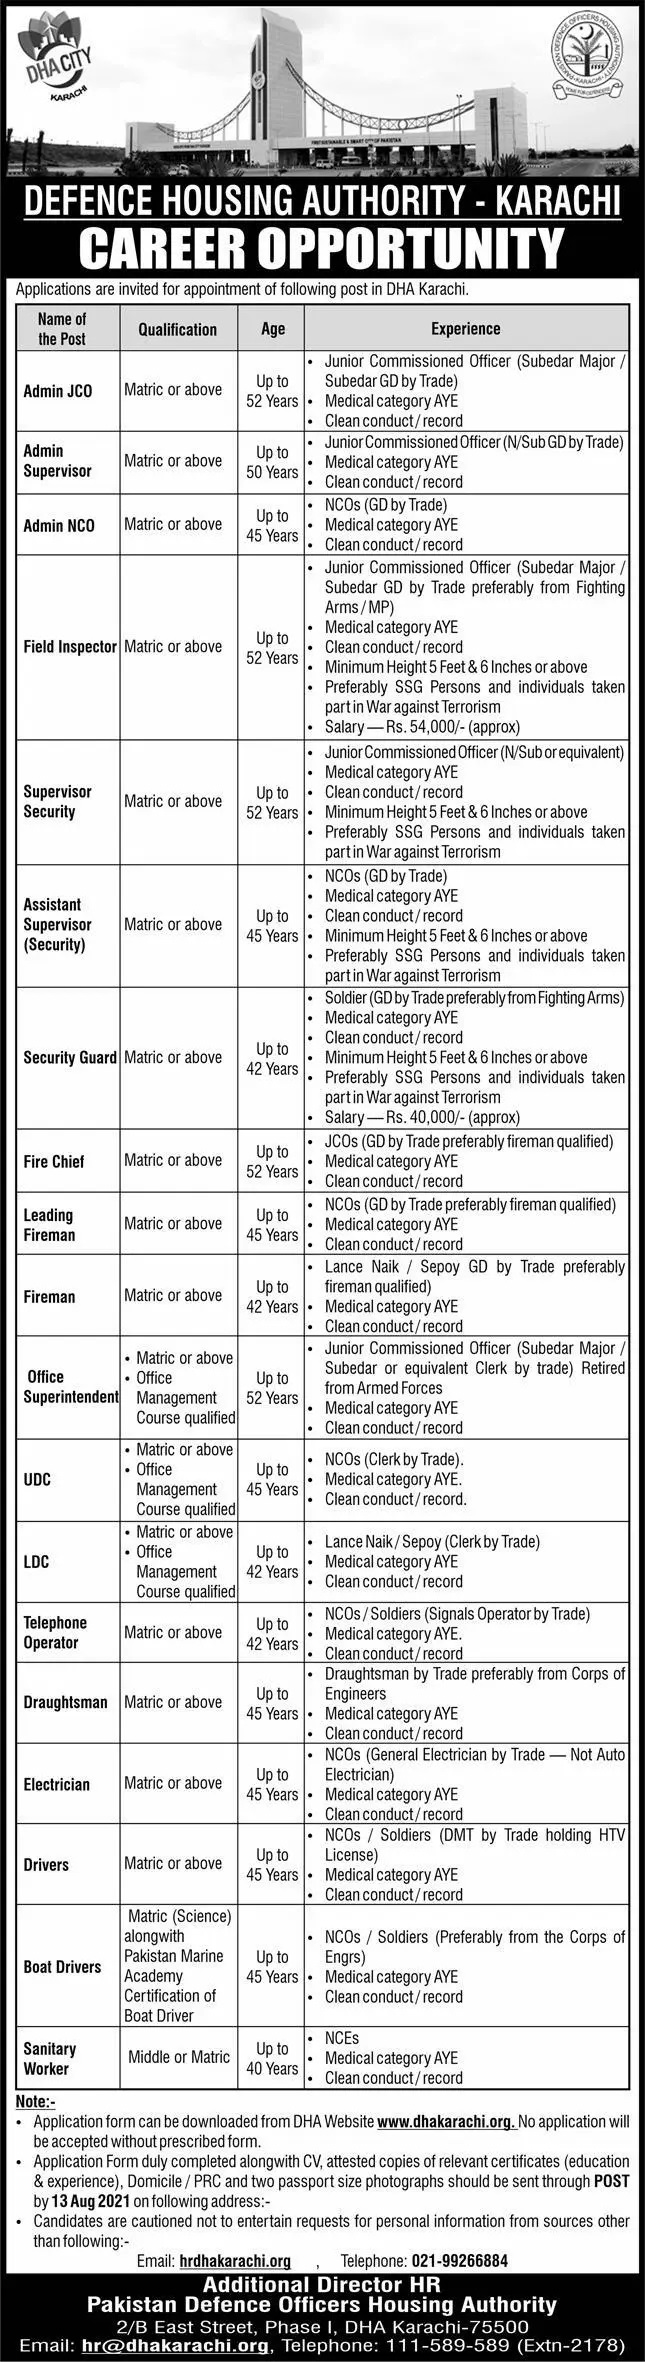 Government jobs in Karachi 2021 for Matric At DHA Karachi Defence Housing Authority